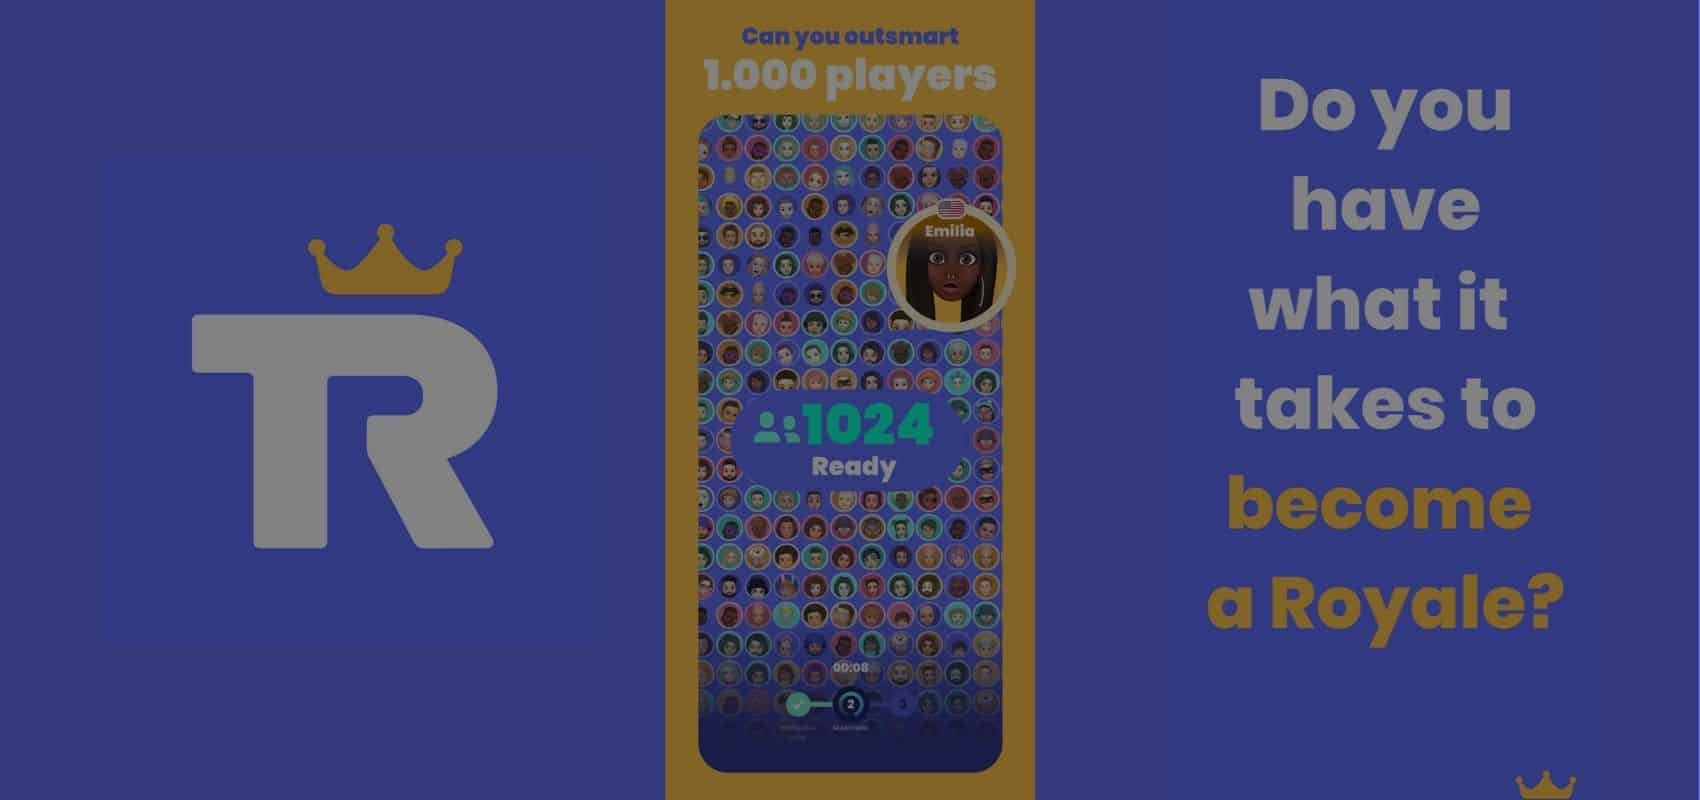 Trivia Royale smashes past 2 million players, hits #1 spot on US App Store in just 10 days